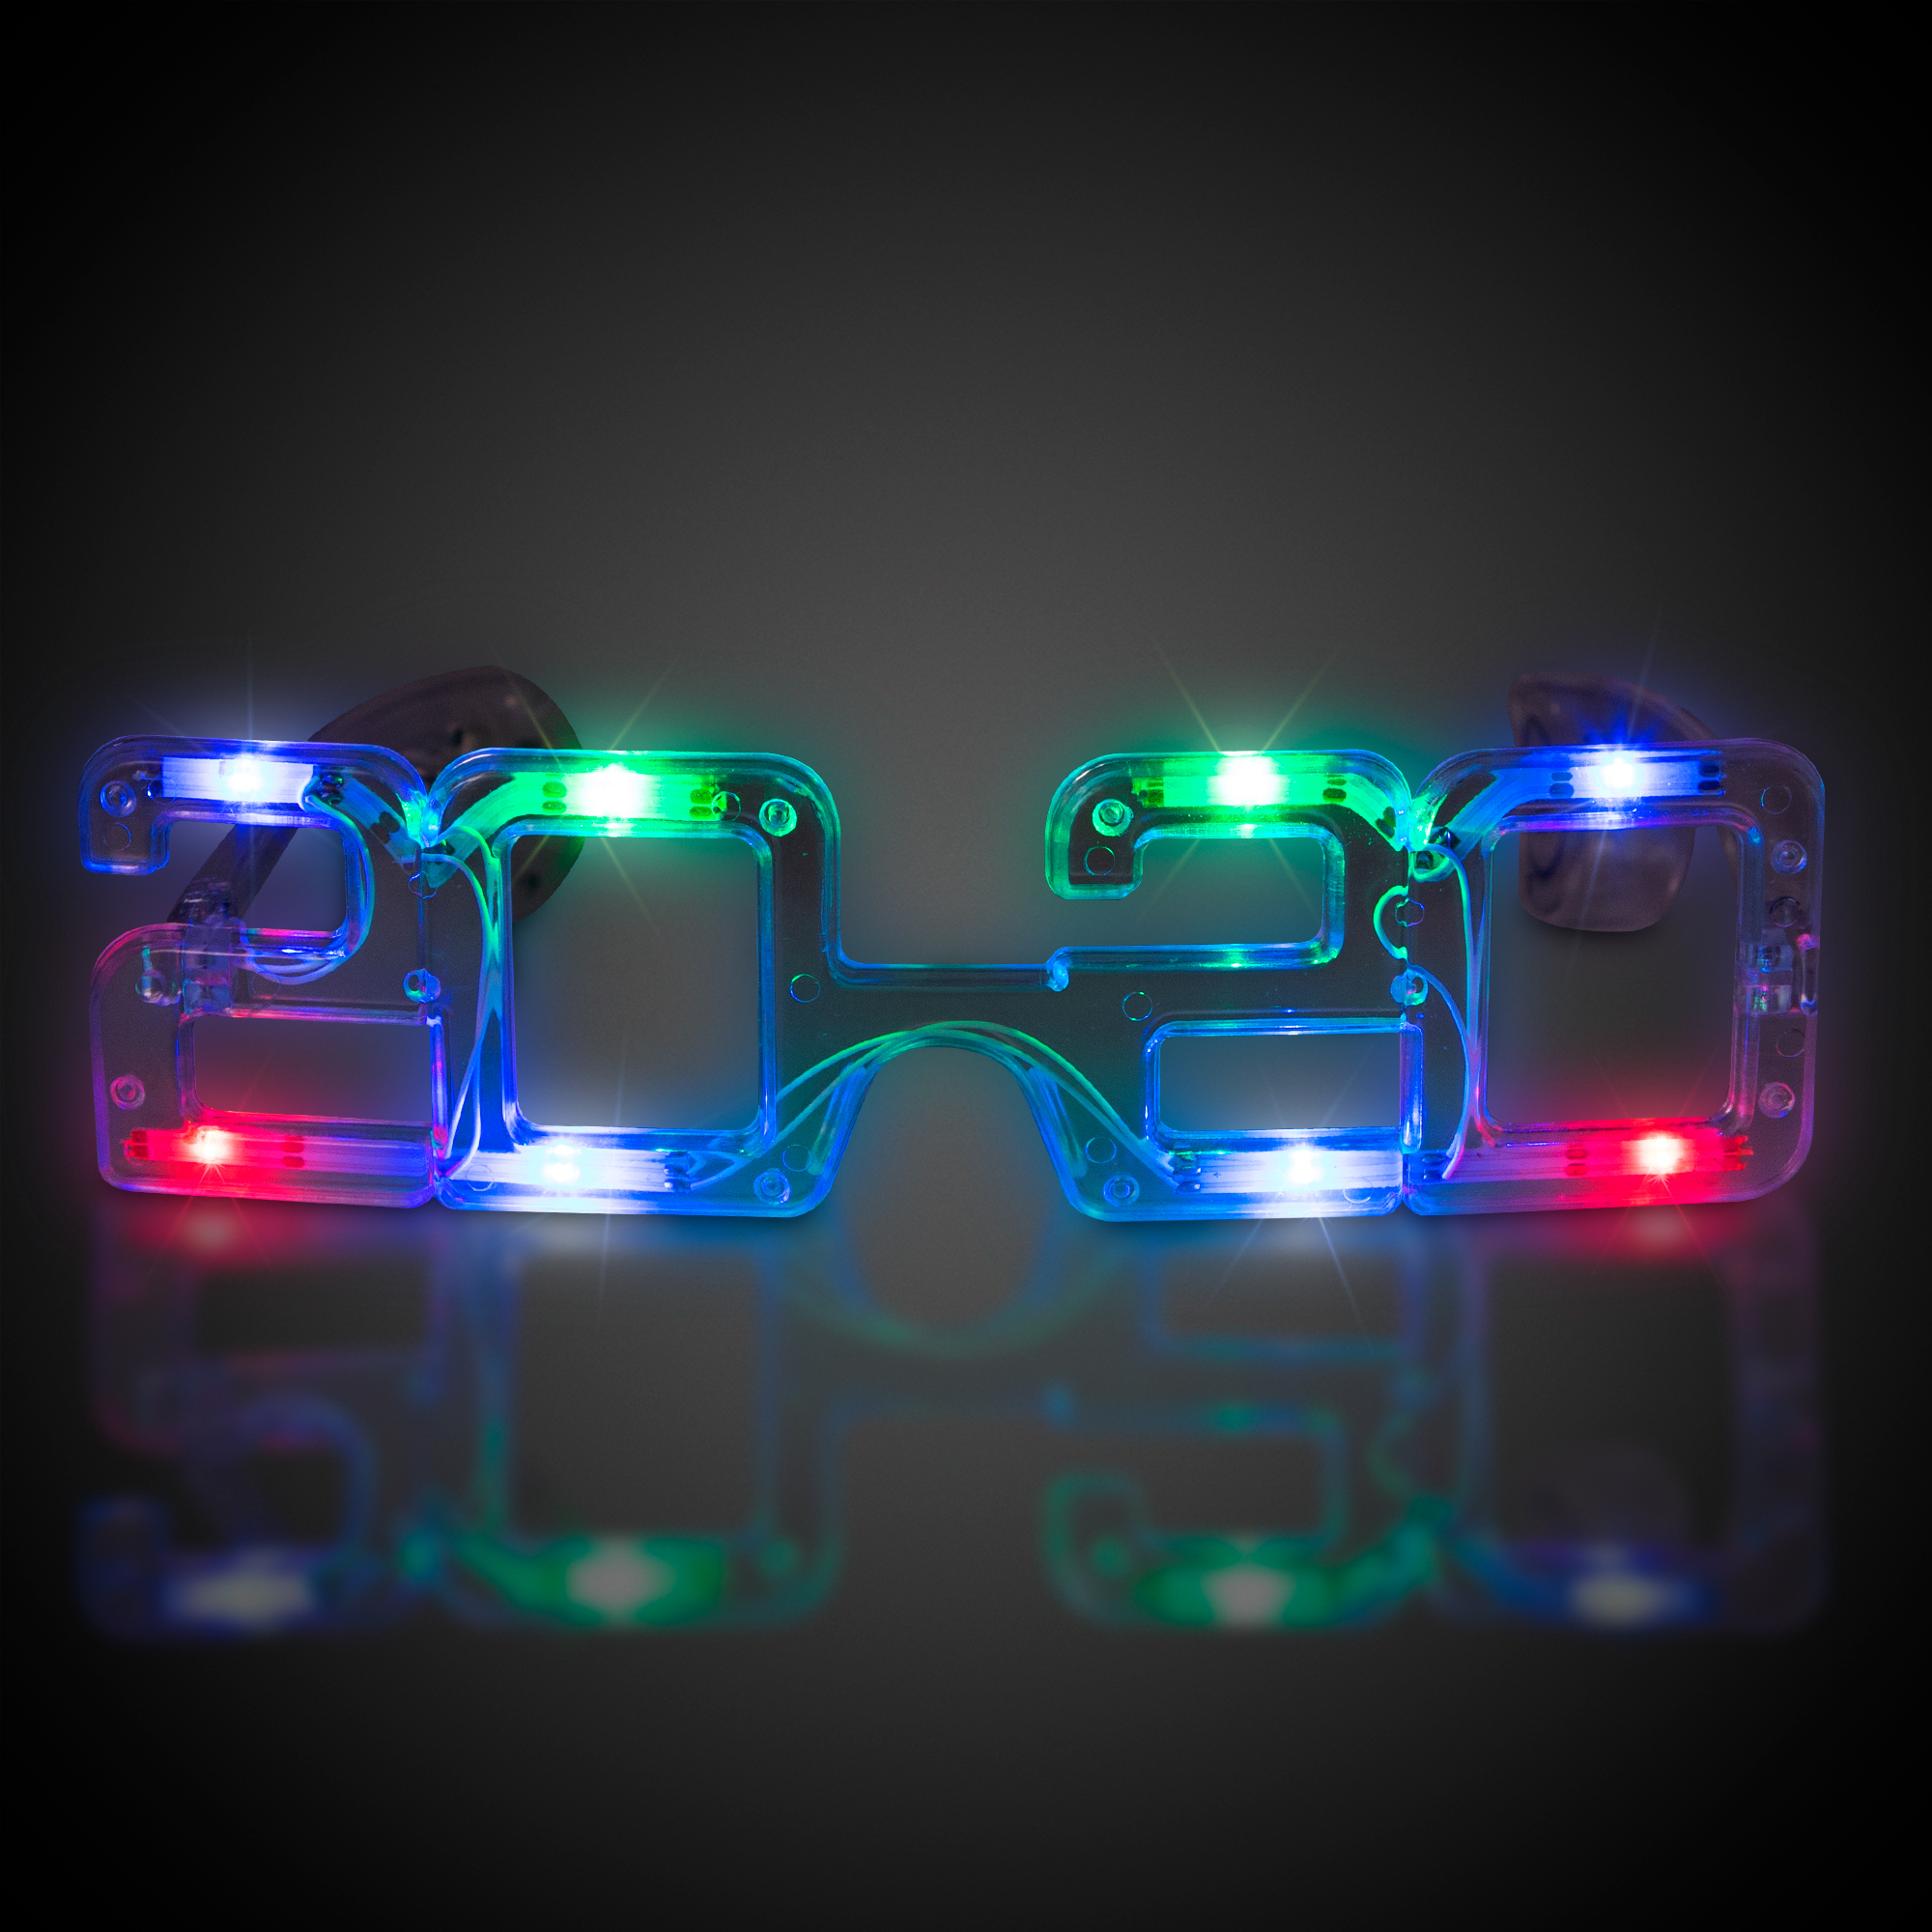 2020 LED EYEGLASSES - MULTI